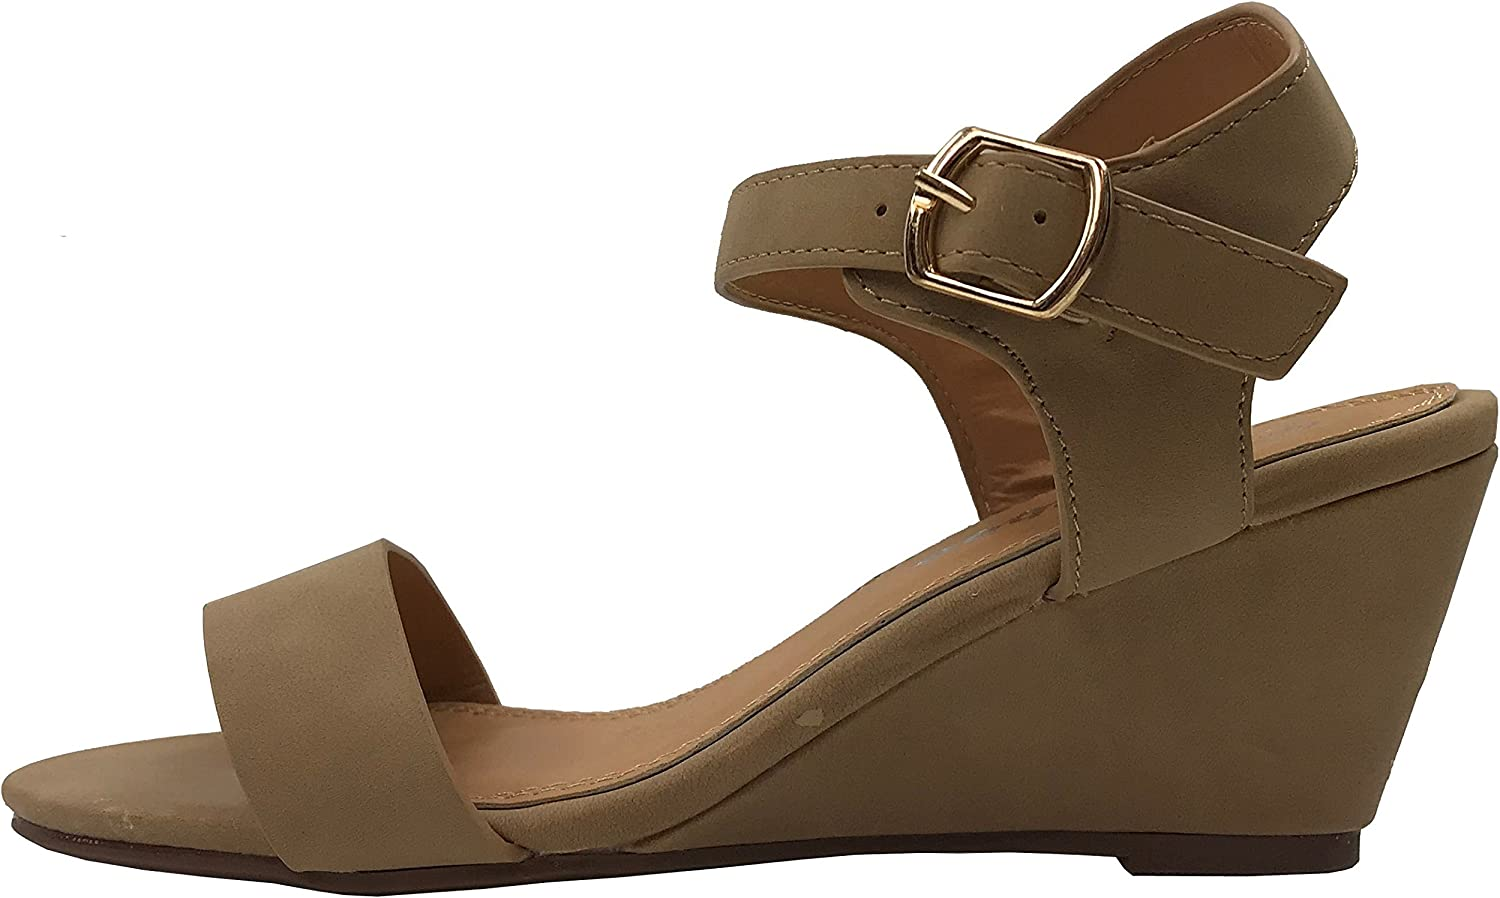 W Collection Womens Open Toe Wedge Sandal Ankle Strap Over Toe Mid High Heel